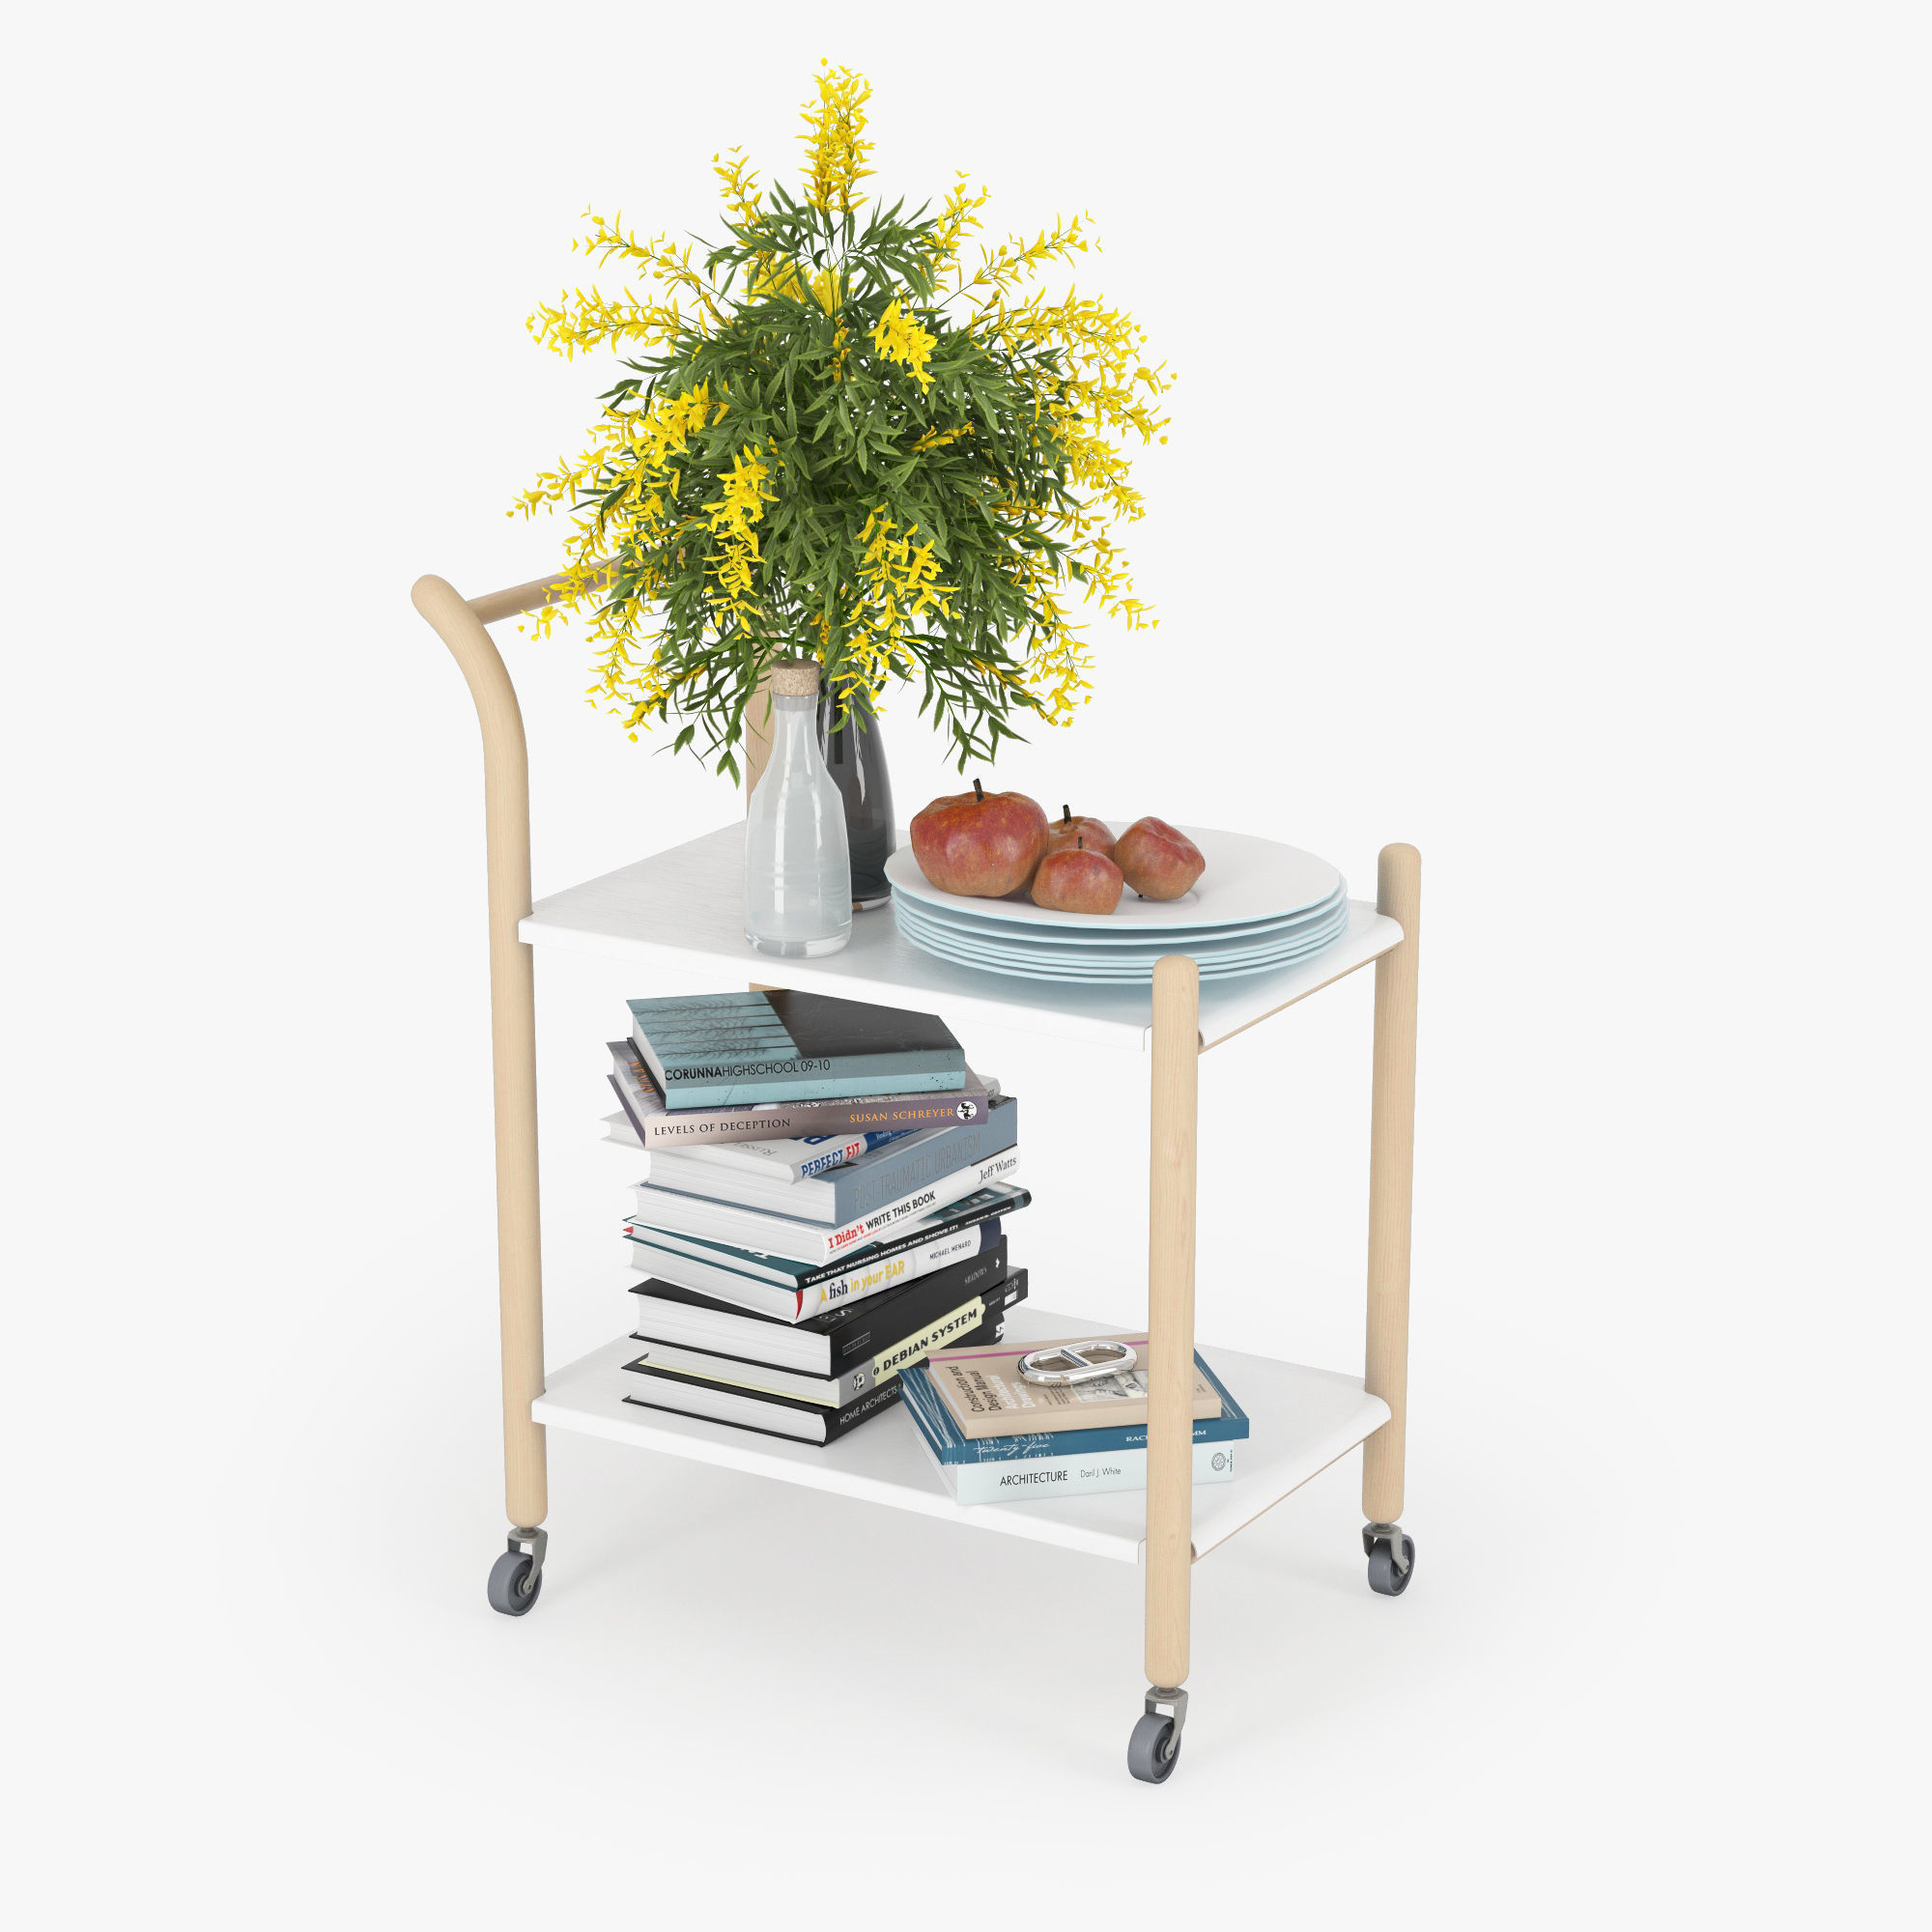 3d Model Ikea Ps 2018 Side Table On Casters Cgtrader